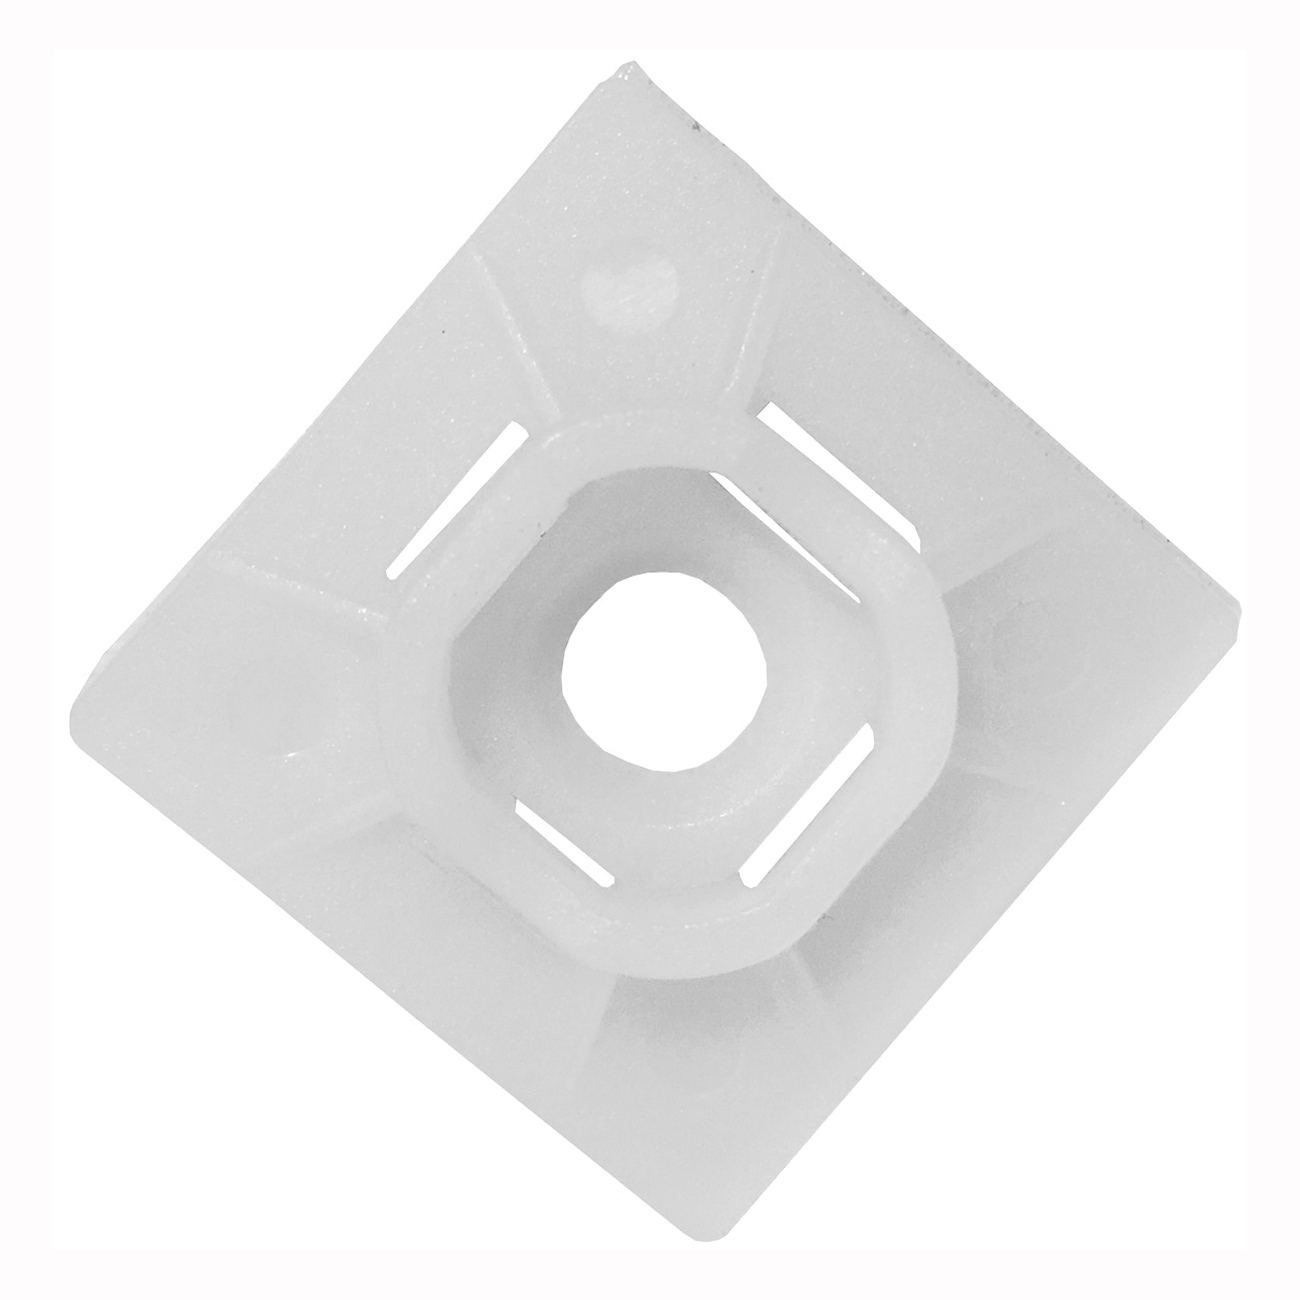 Picture of GB 45-MB Cable Tie Mounting Base, Nylon, Natural White